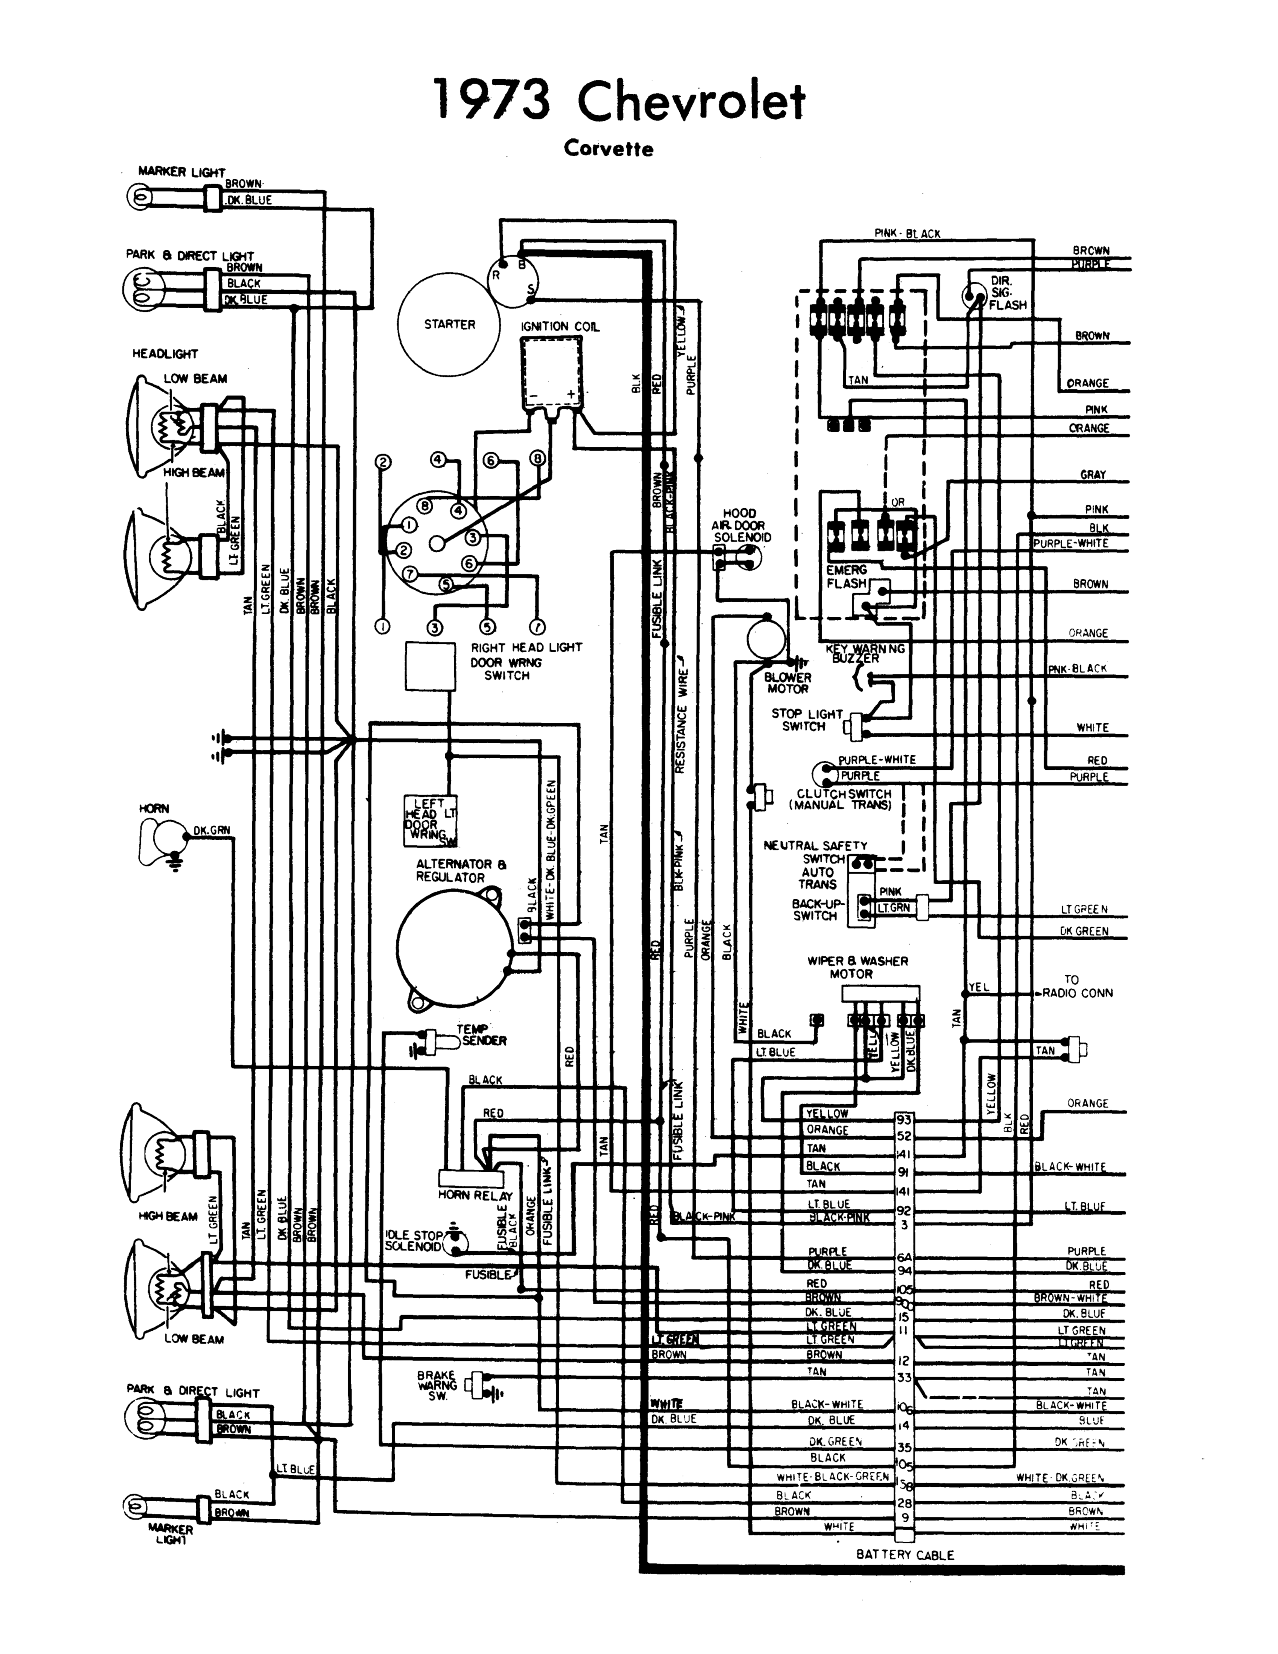 wiring diagram 1973 corvette chevy corvette 1973 wiring diagrams 1974 corvette engine wiring diagram corvette engine wiring diagram [ 1278 x 1654 Pixel ]